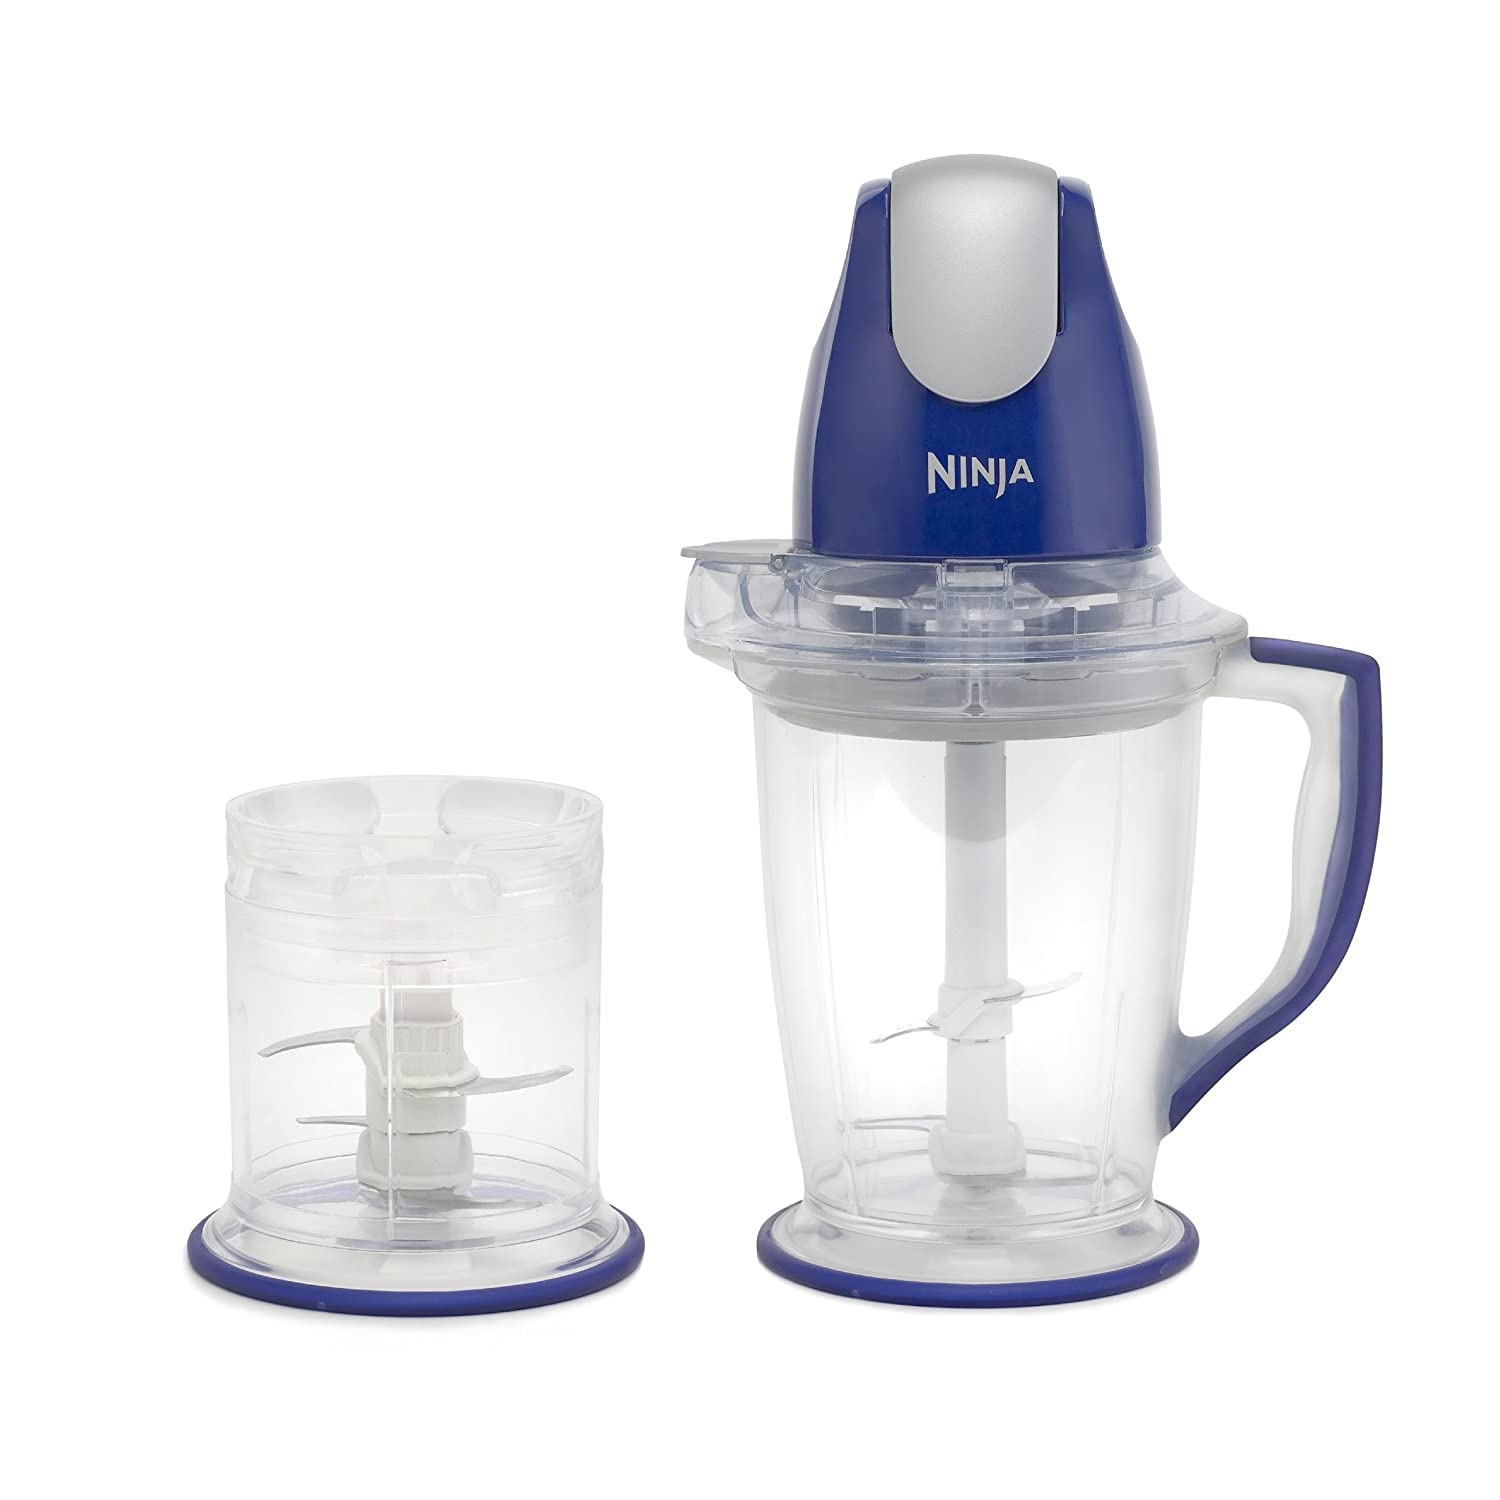 Euro Pro Blender Food Processor